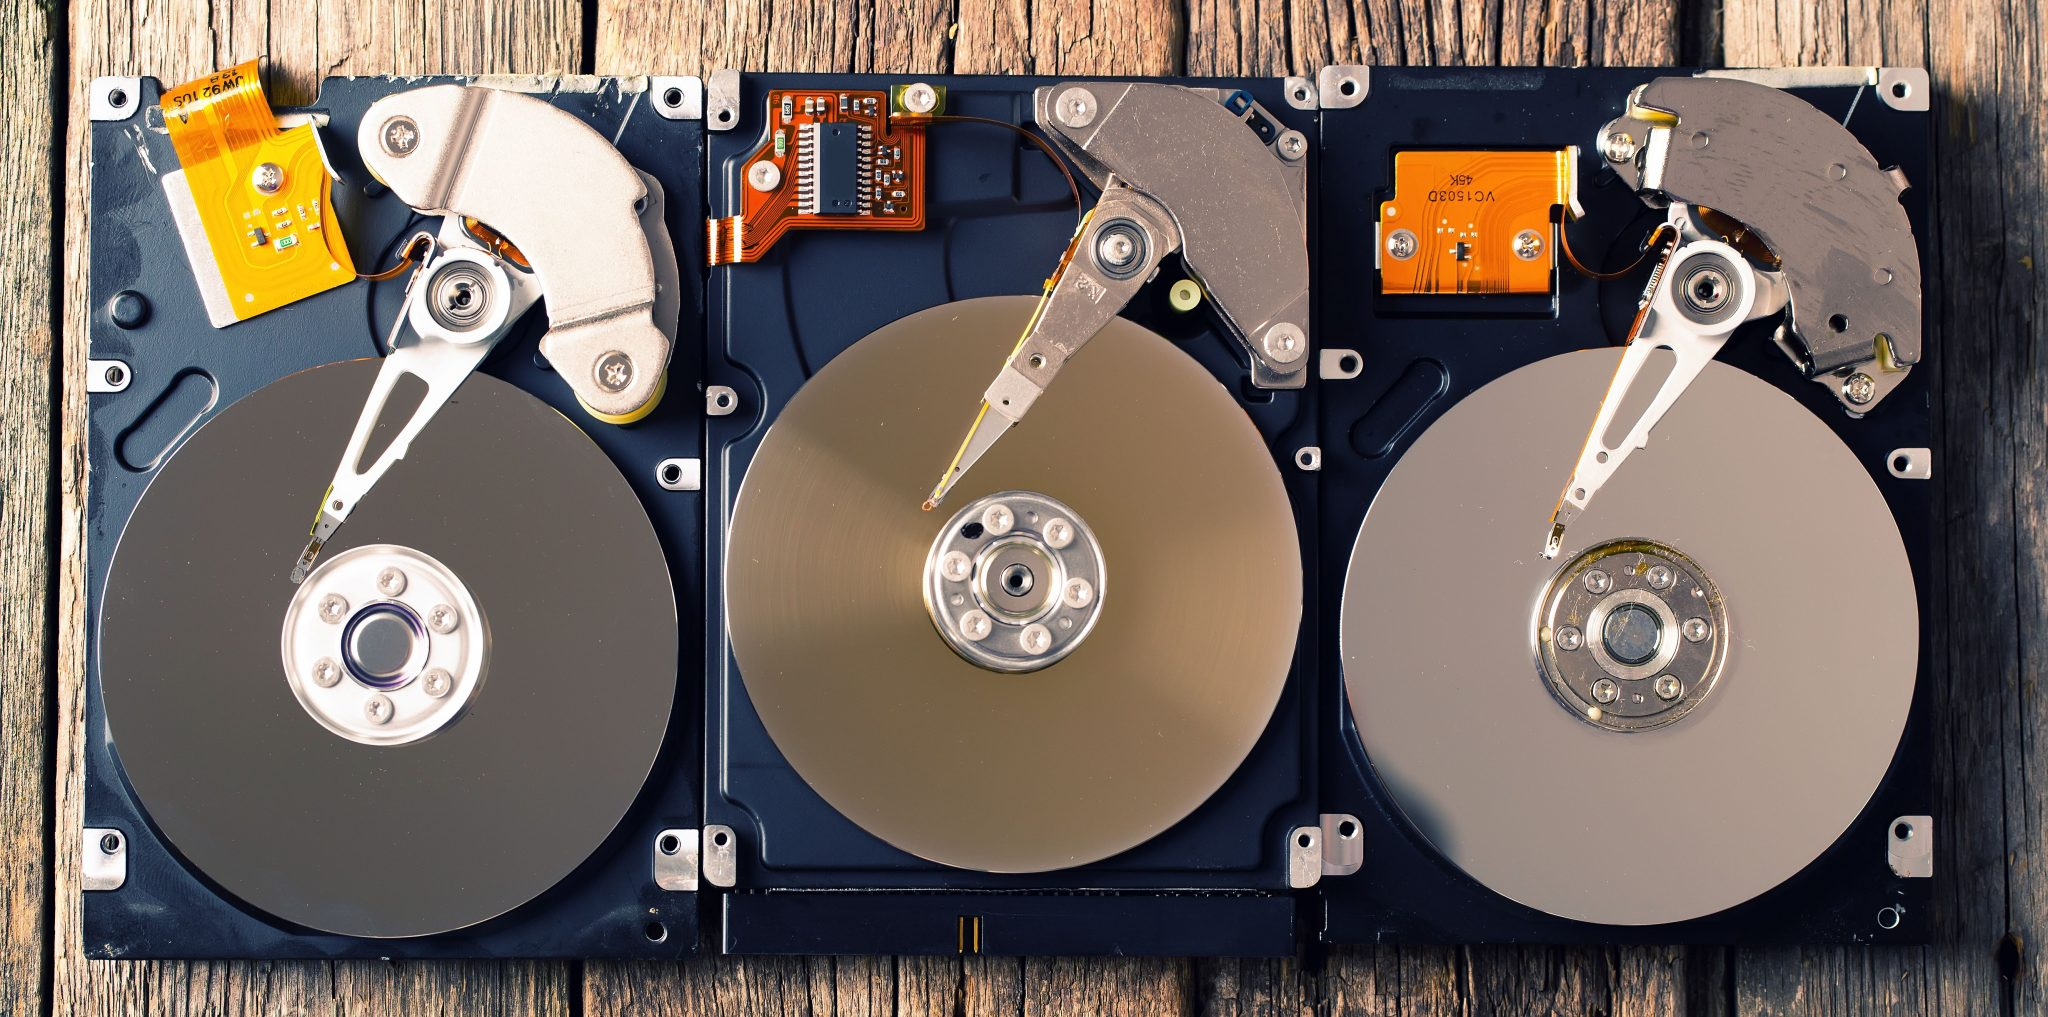 Azure Managed Disks and Scale Sets come to general availability